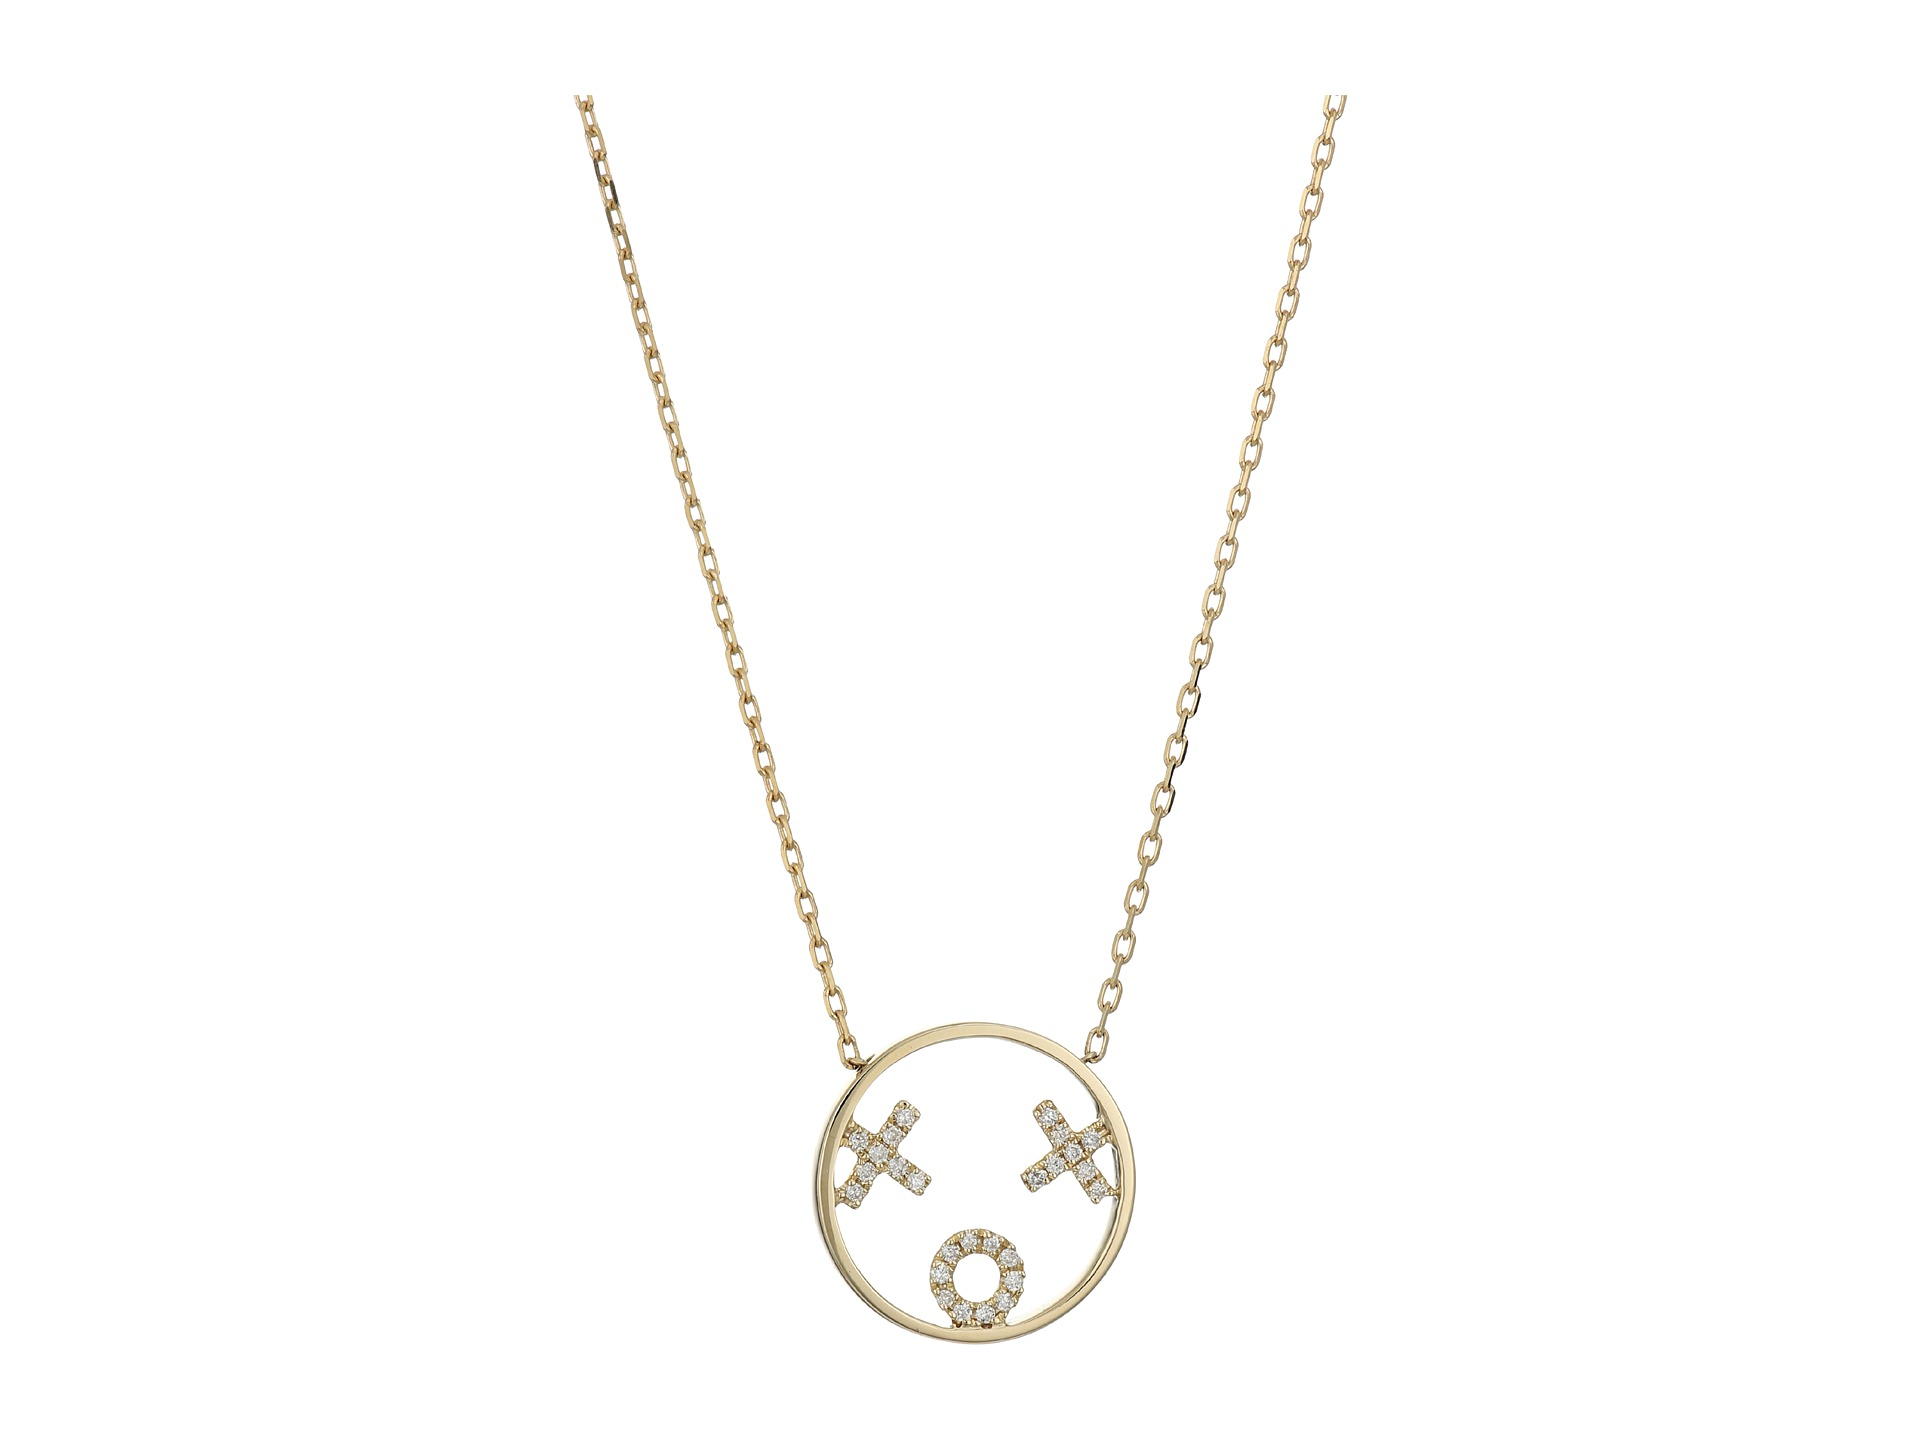 ruifier xoxo necklace 9ct yellow gold zappos free